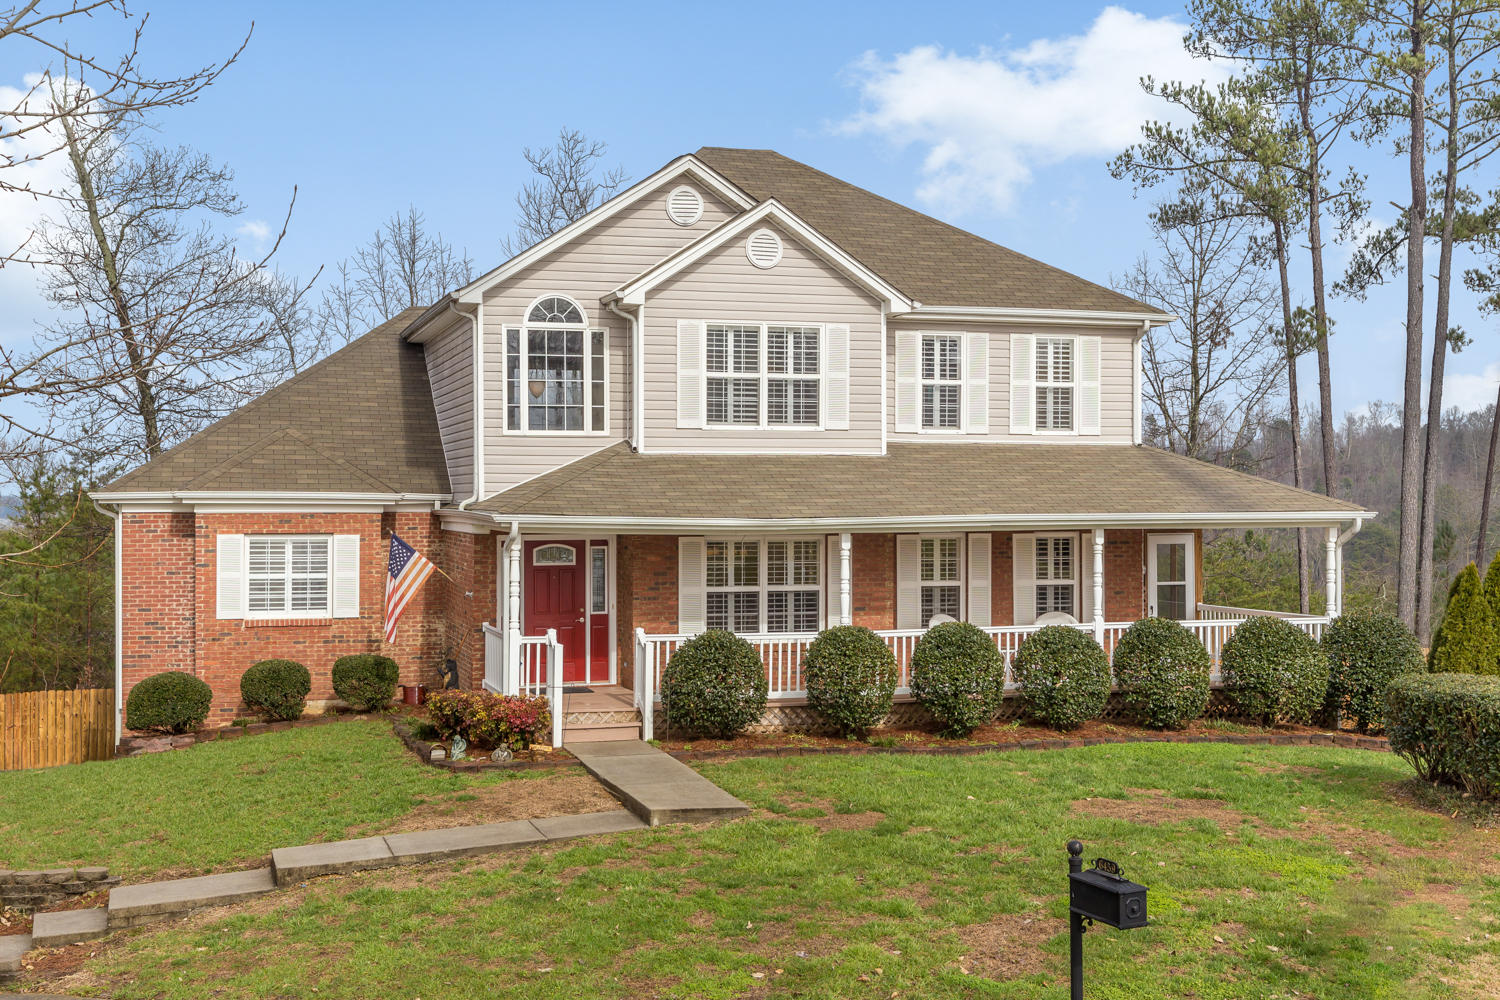 6459 Rim Crest Lane, Harrison, Tennessee 37341